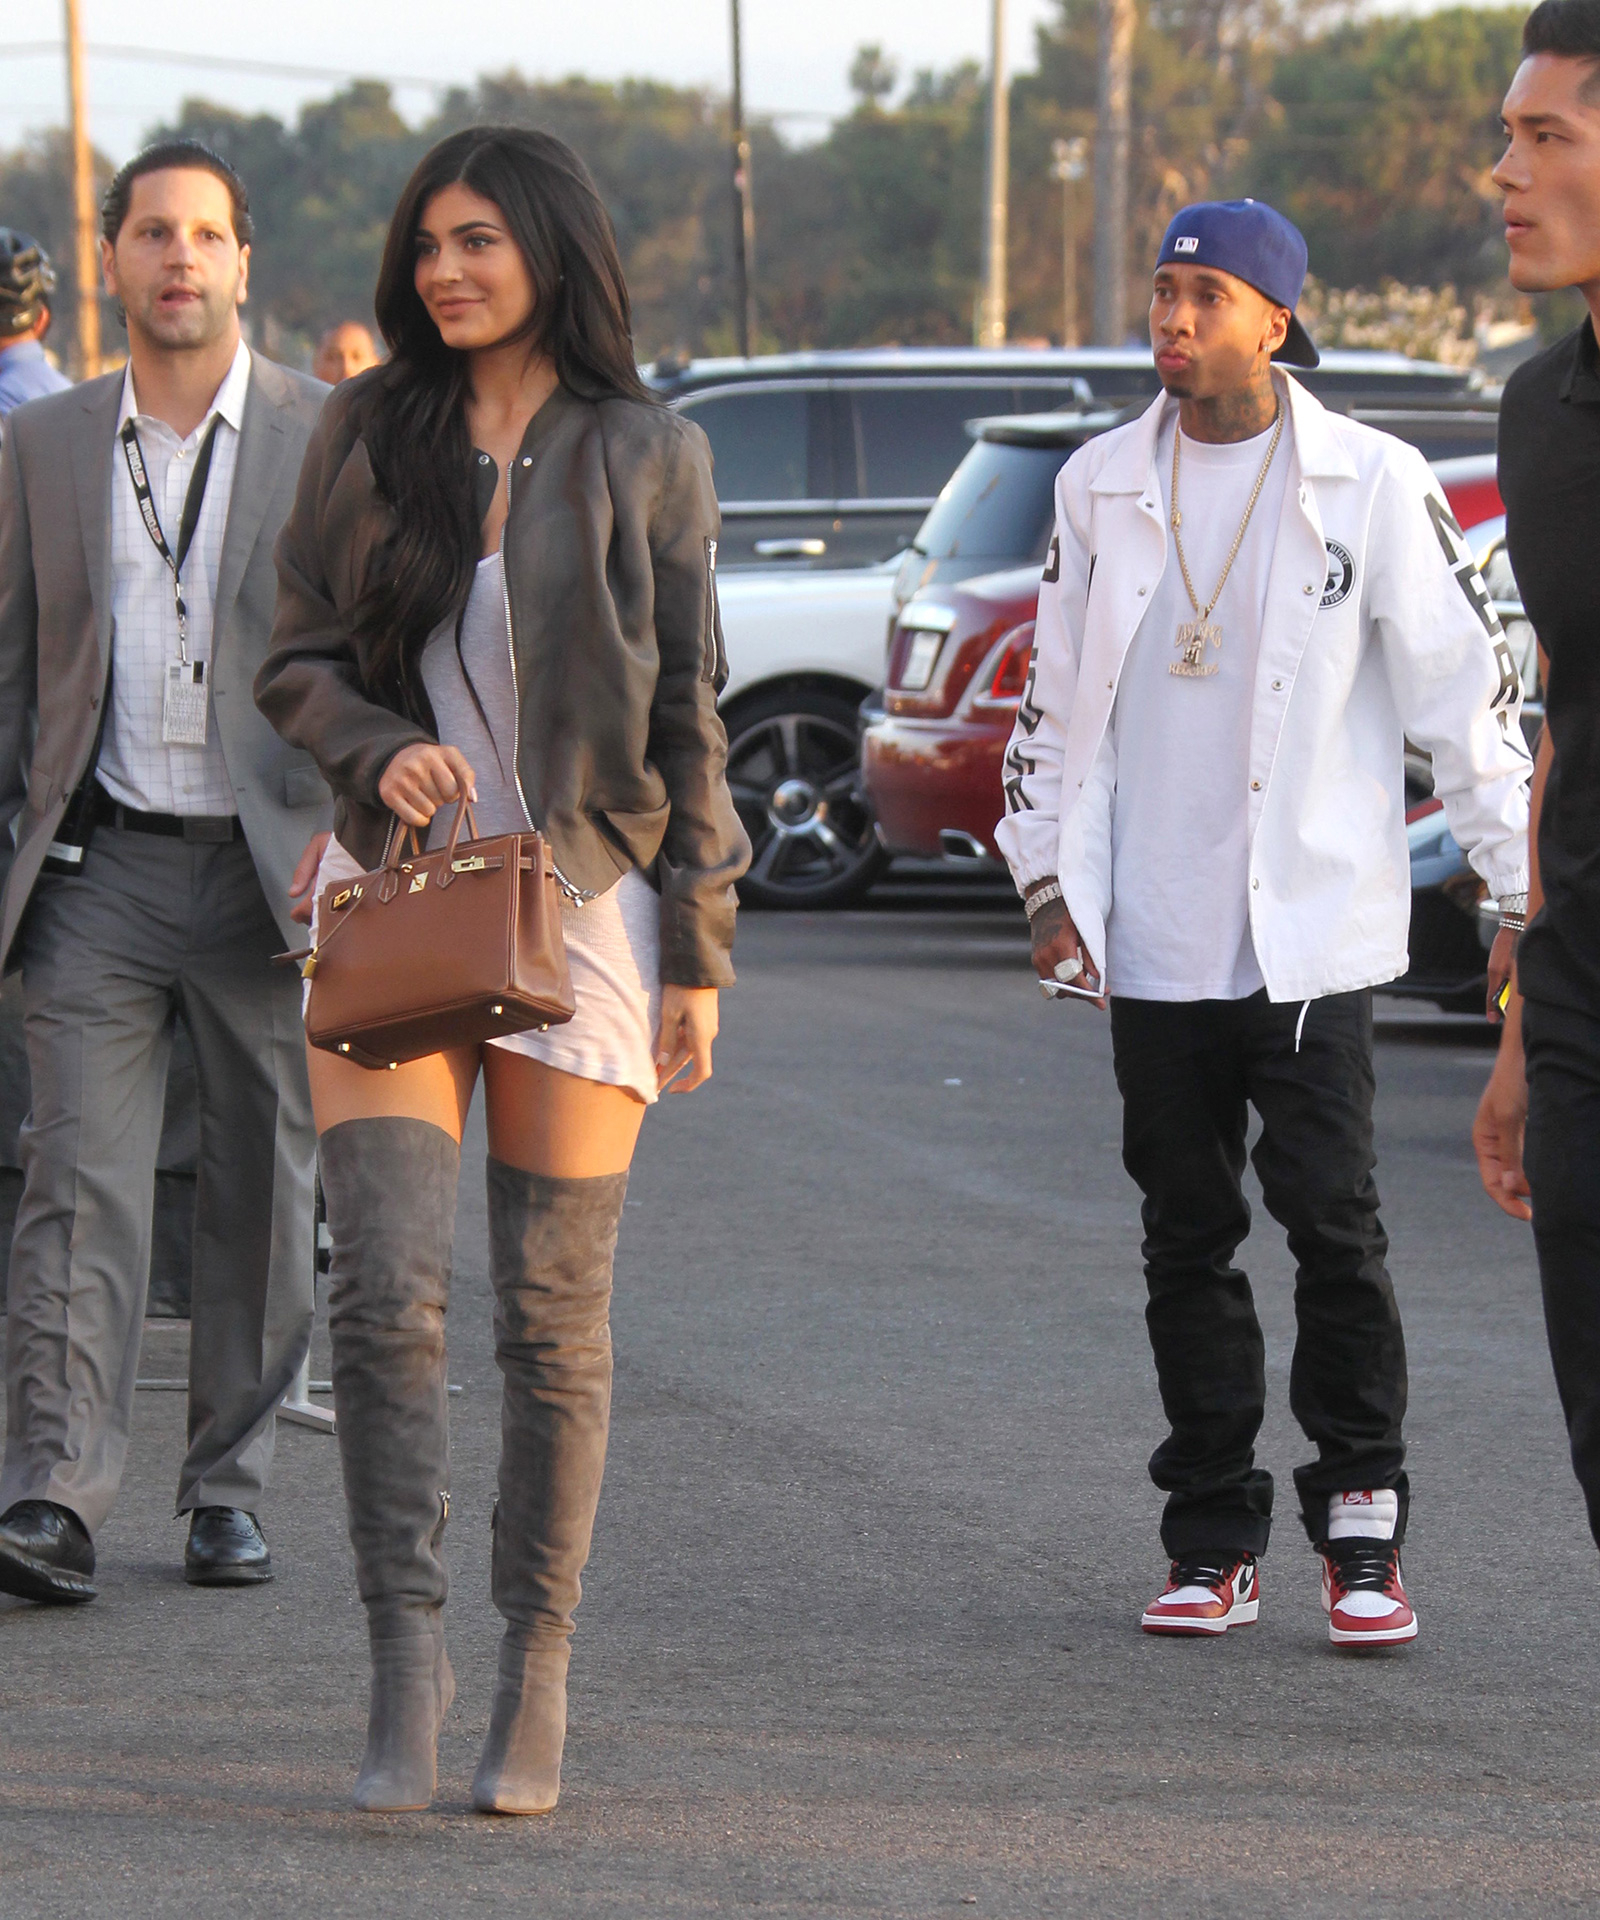 Tyga and Kylie Jenner were spotted holding hands at Kanye West's 'Famous' premiere